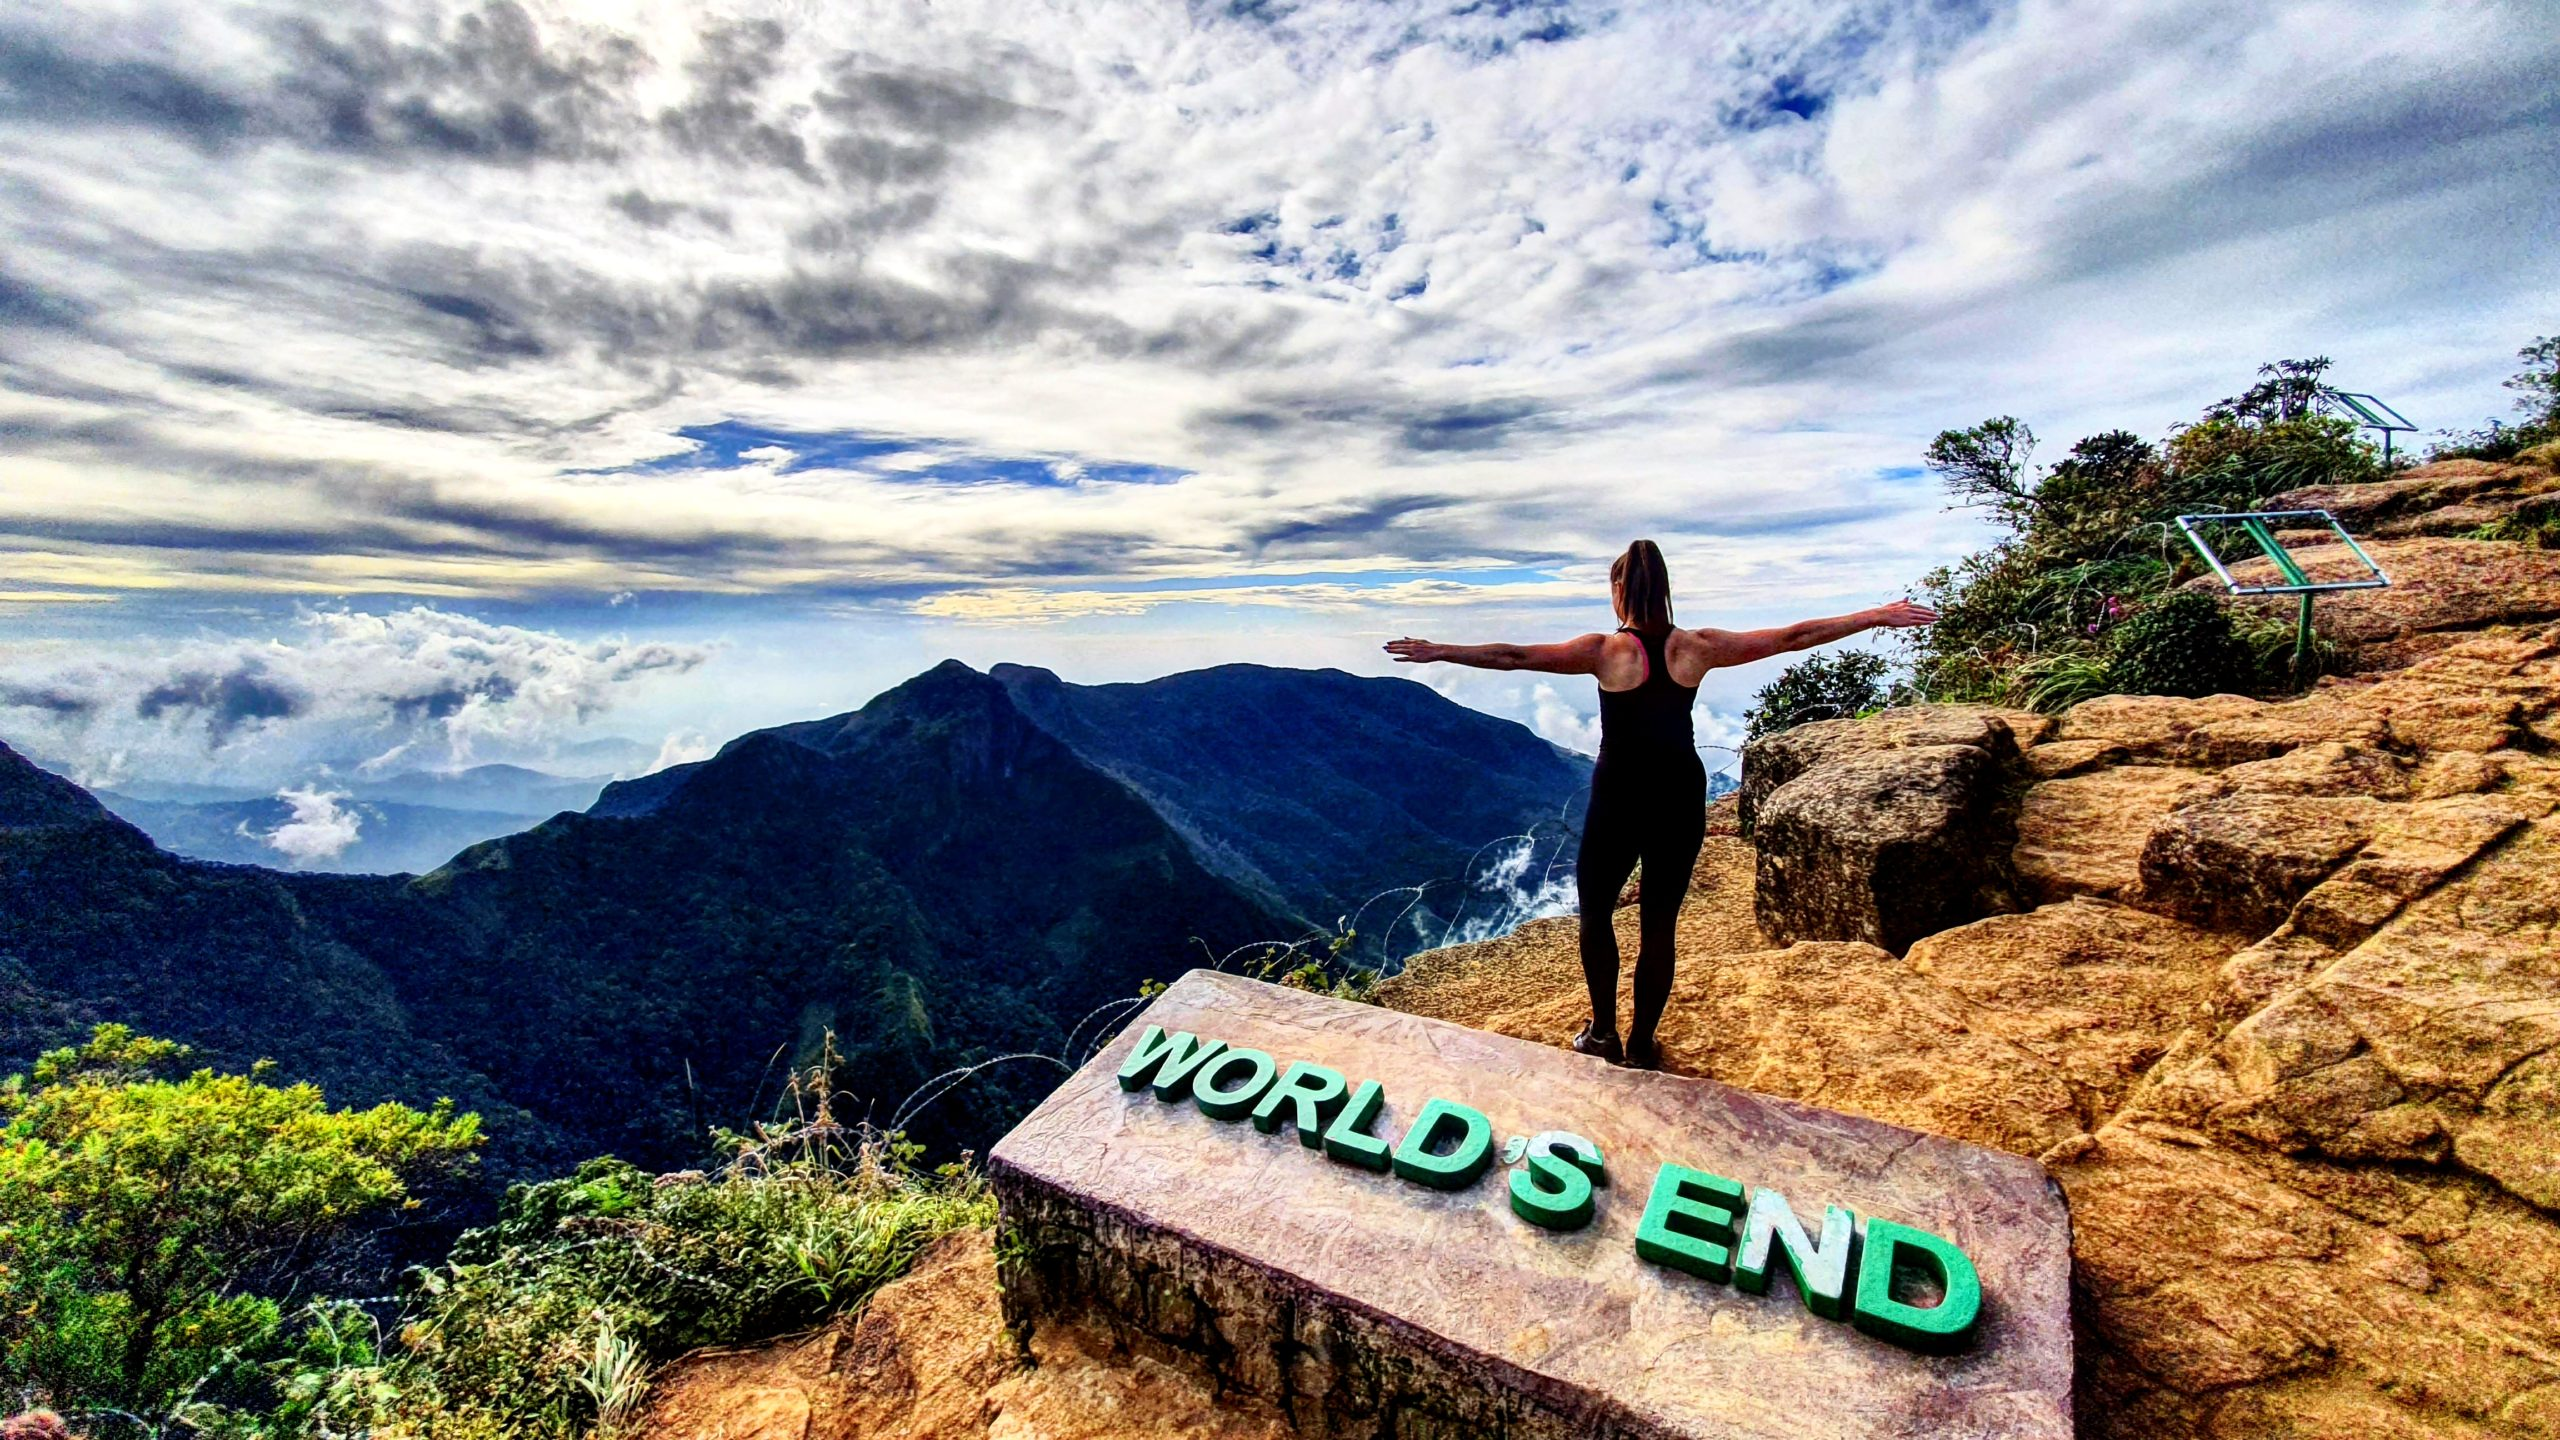 World's End Sri Lanka